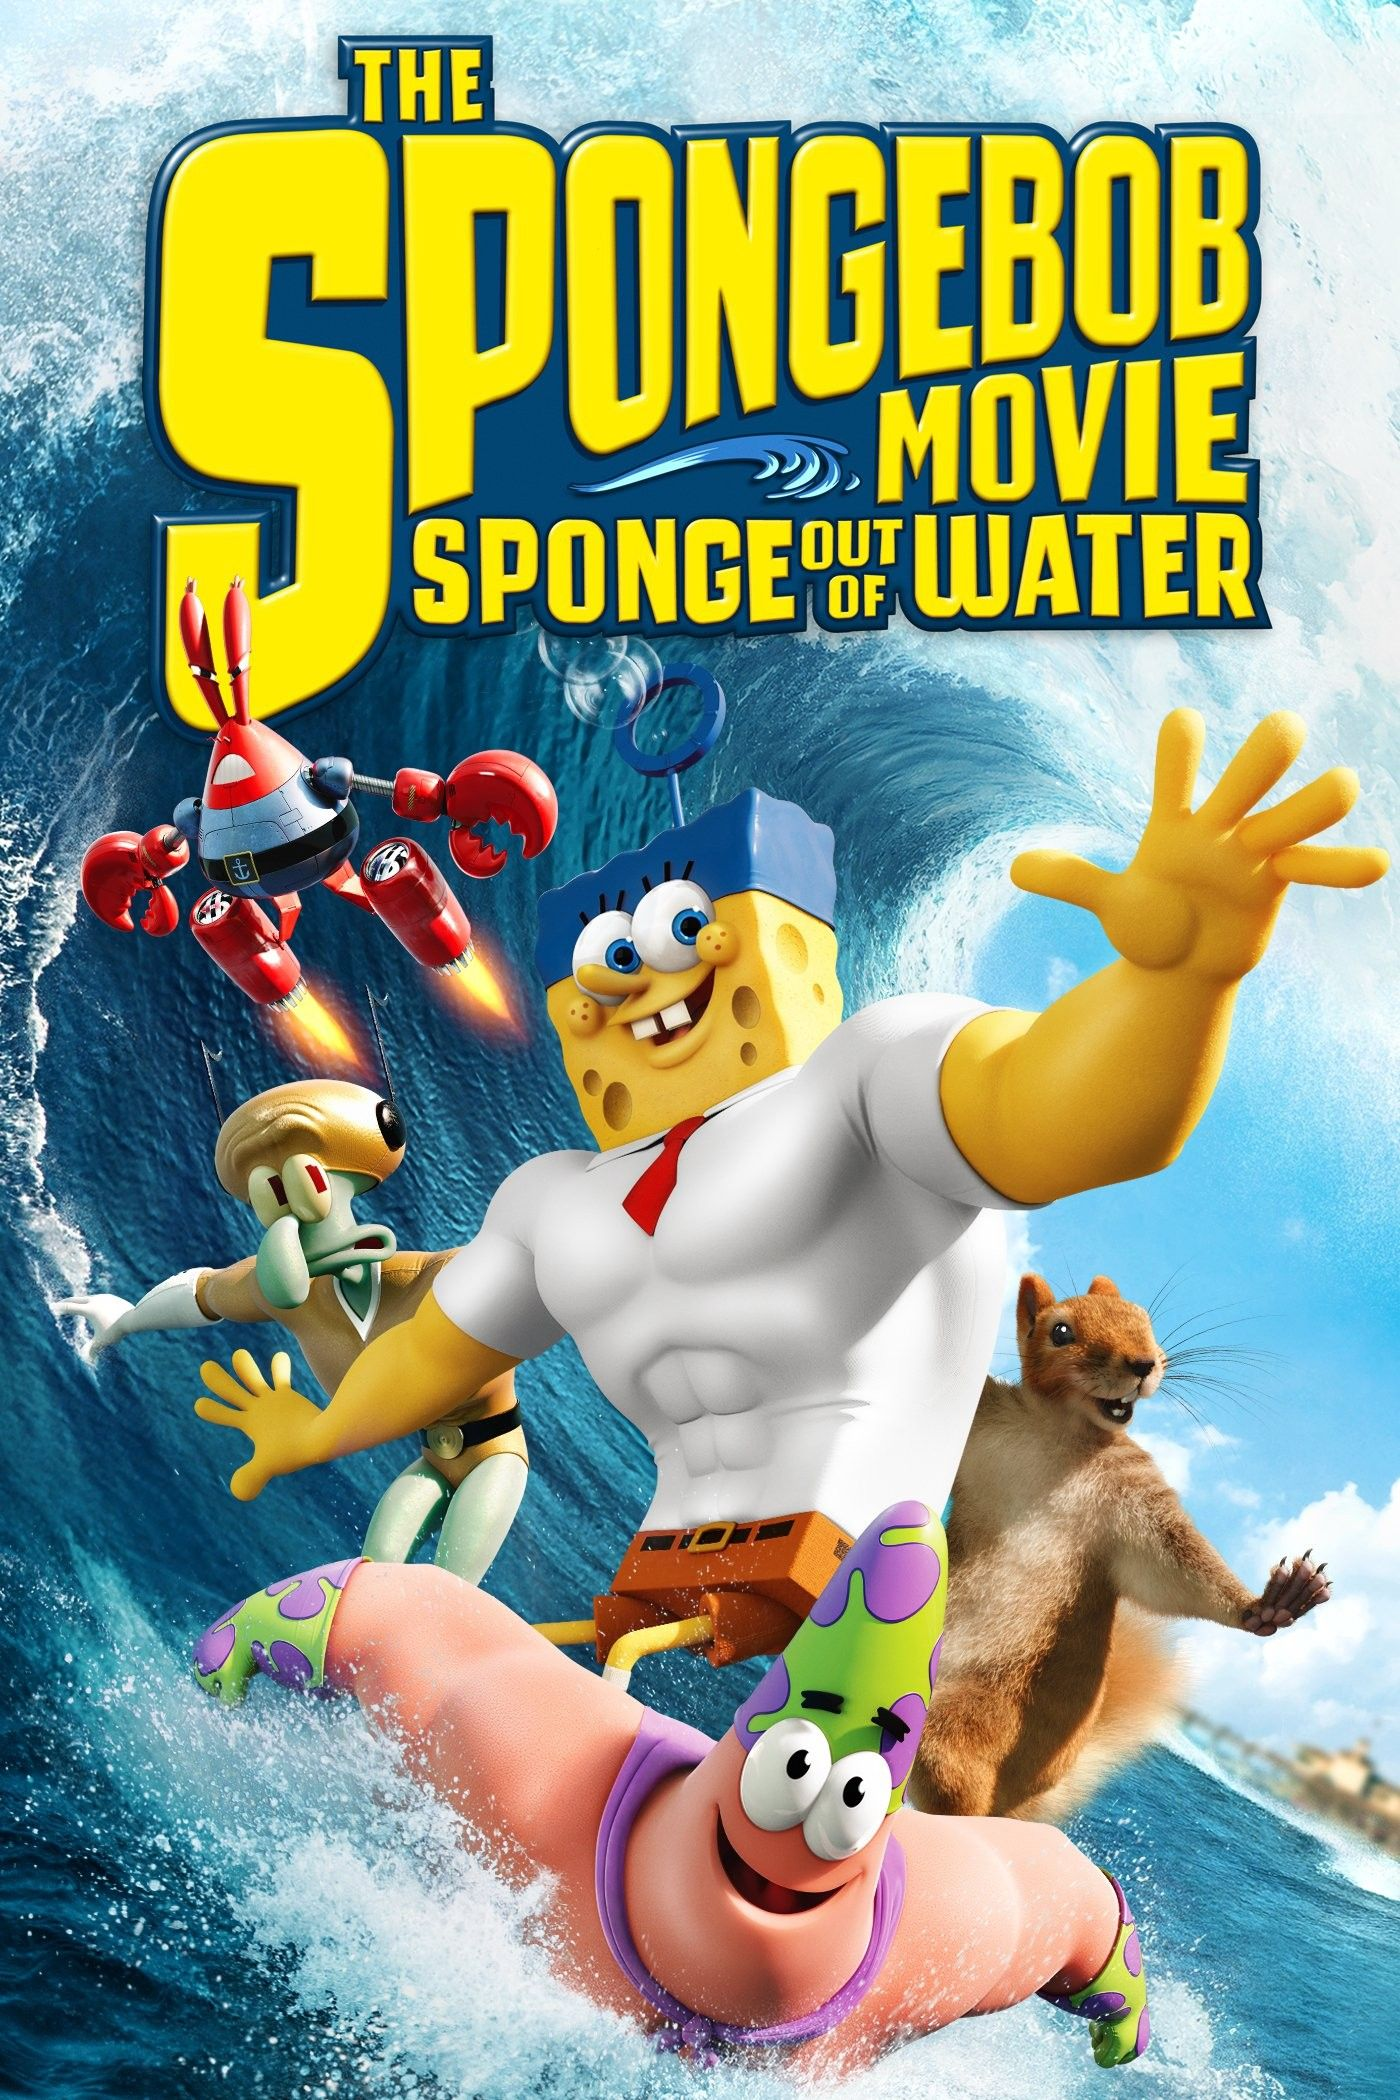 the spongebob movie sponge out of water 2015 watch movies free